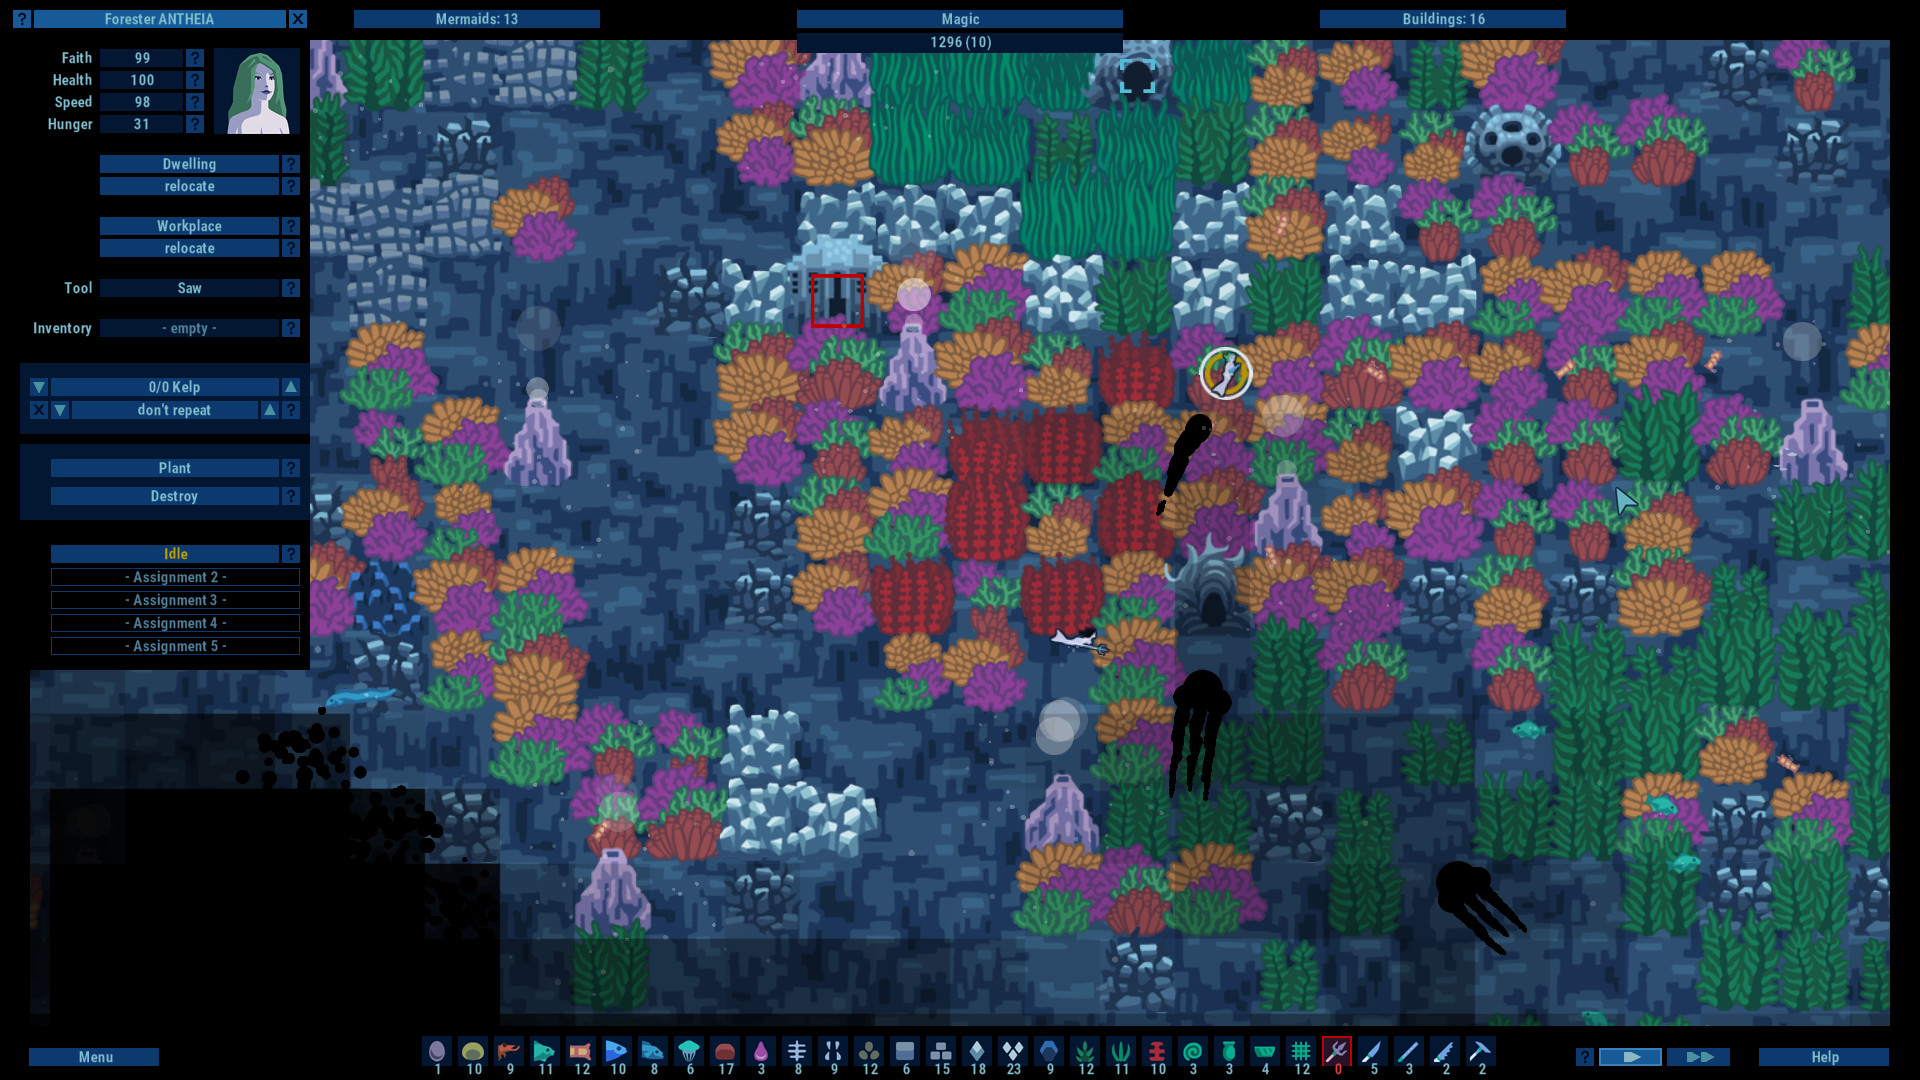 Mermaid Colony Free Download